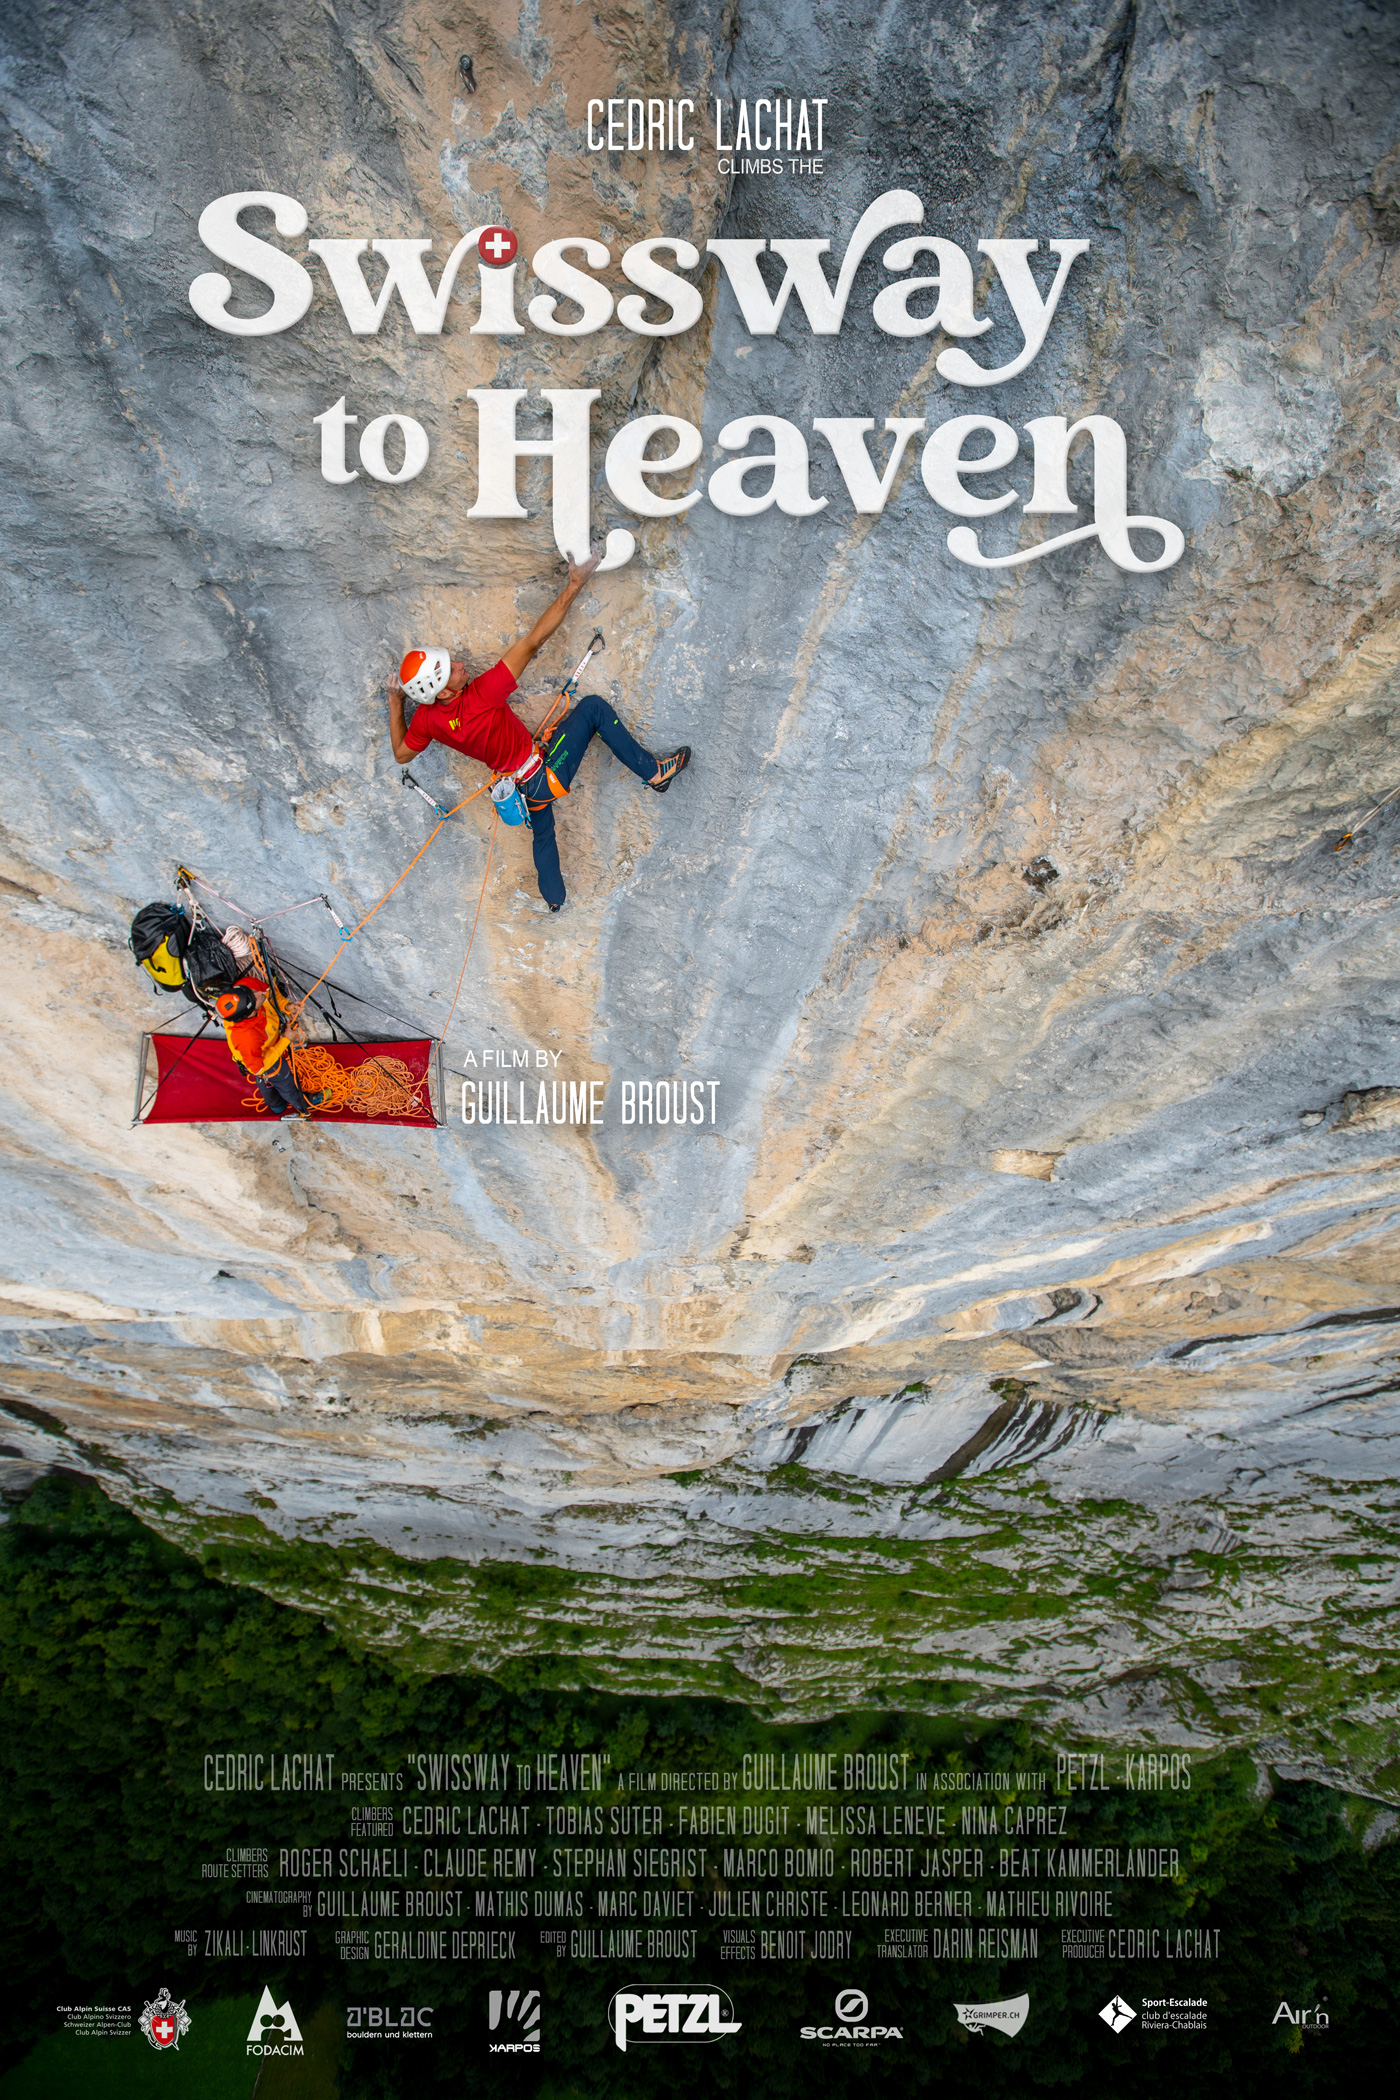 Poster du film Swissway to Heaven - photo © Guillaume Broust